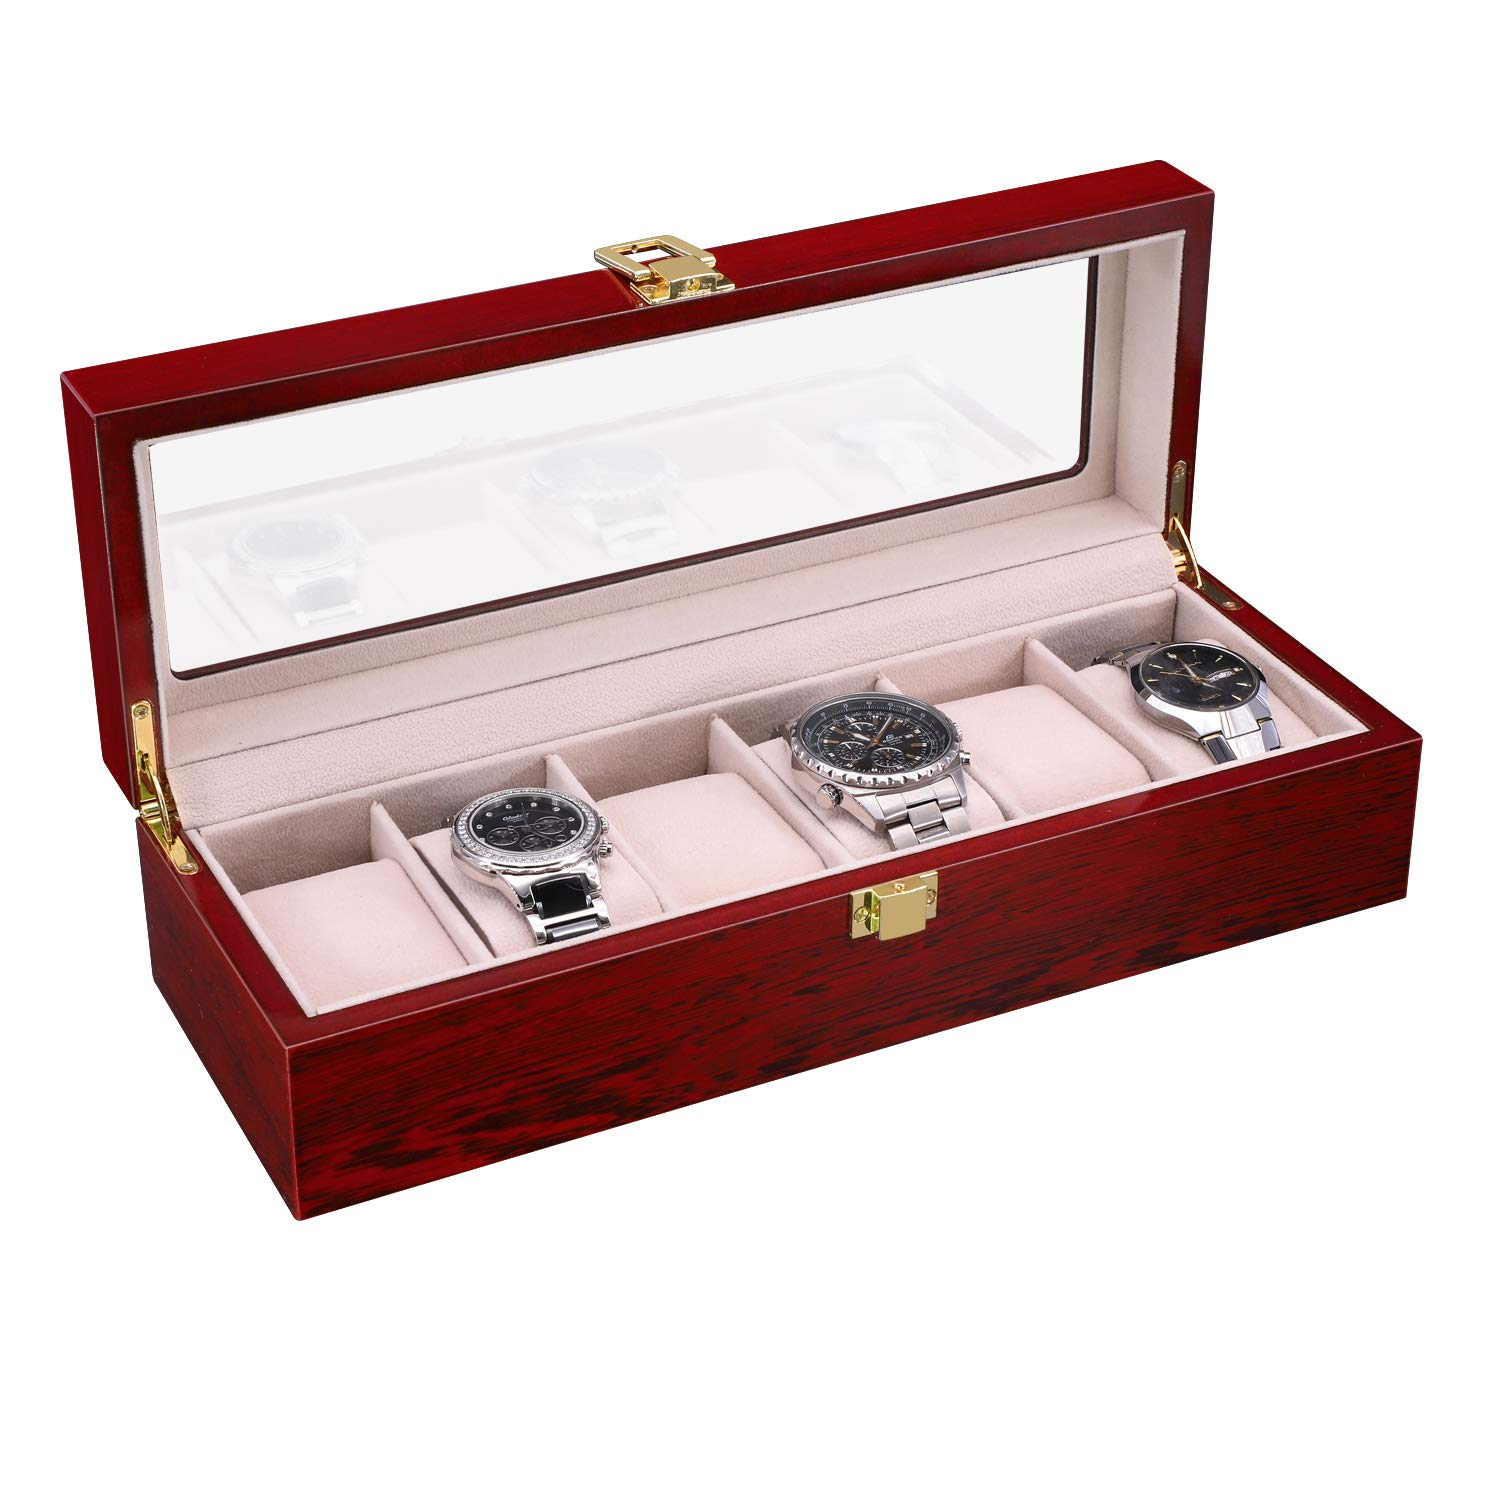 SAVORI Watches Box Luxury 6 Slots Mens Watch Case Cherry Piano Lacquer Wood Watches Collection Superior Metal Buckle with Soft Removable Velvet Pillows - Red